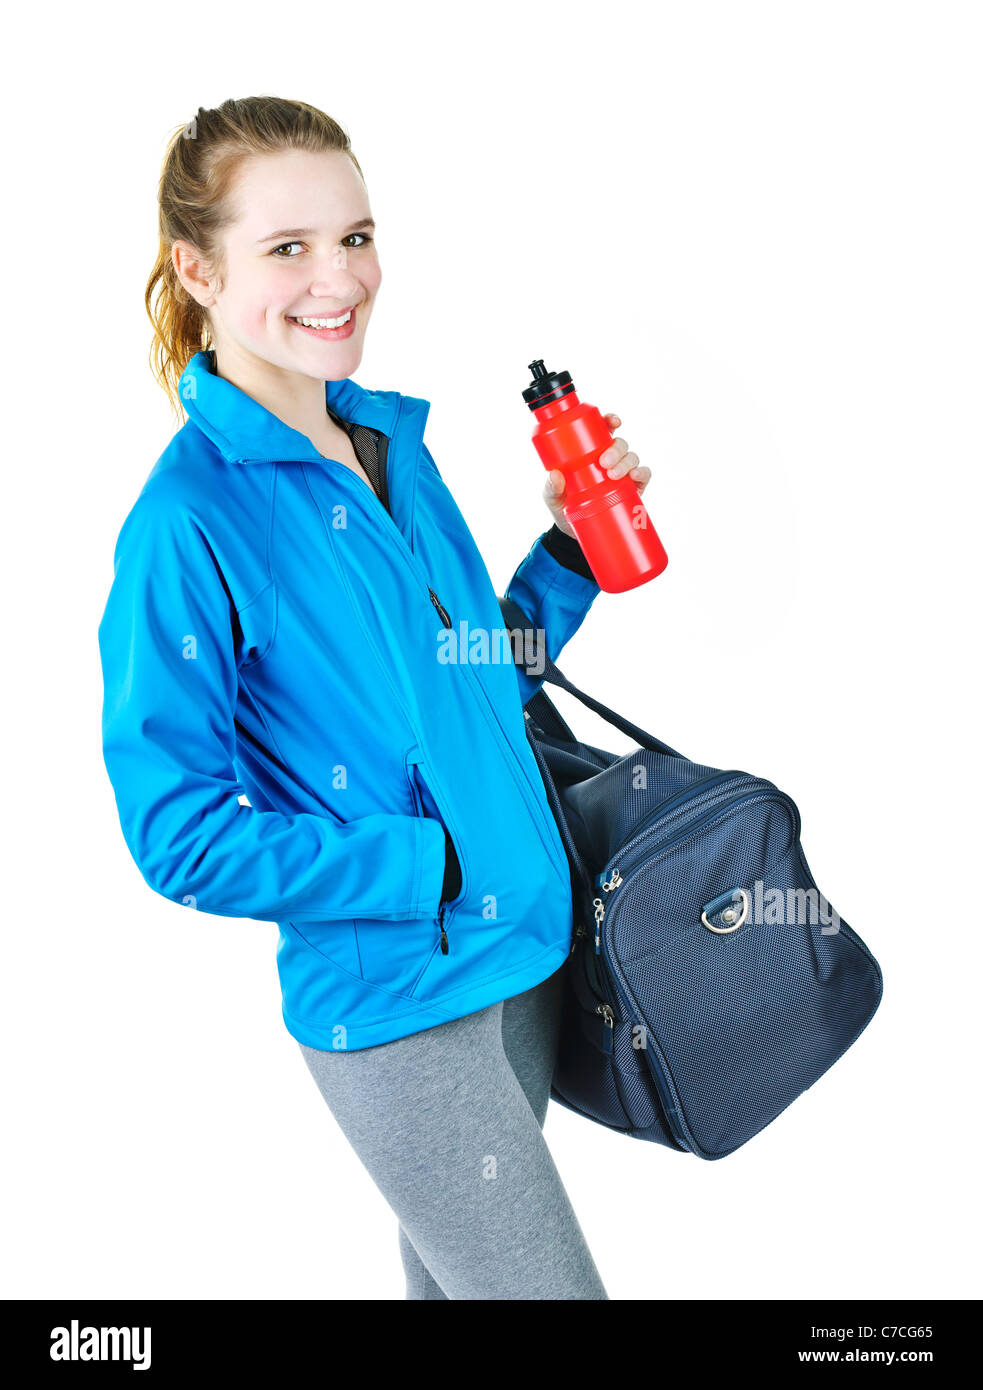 01d3fbecaa39f1 Smiling fit young woman with gym bag and water bottle ready for fitness  exercise - Stock